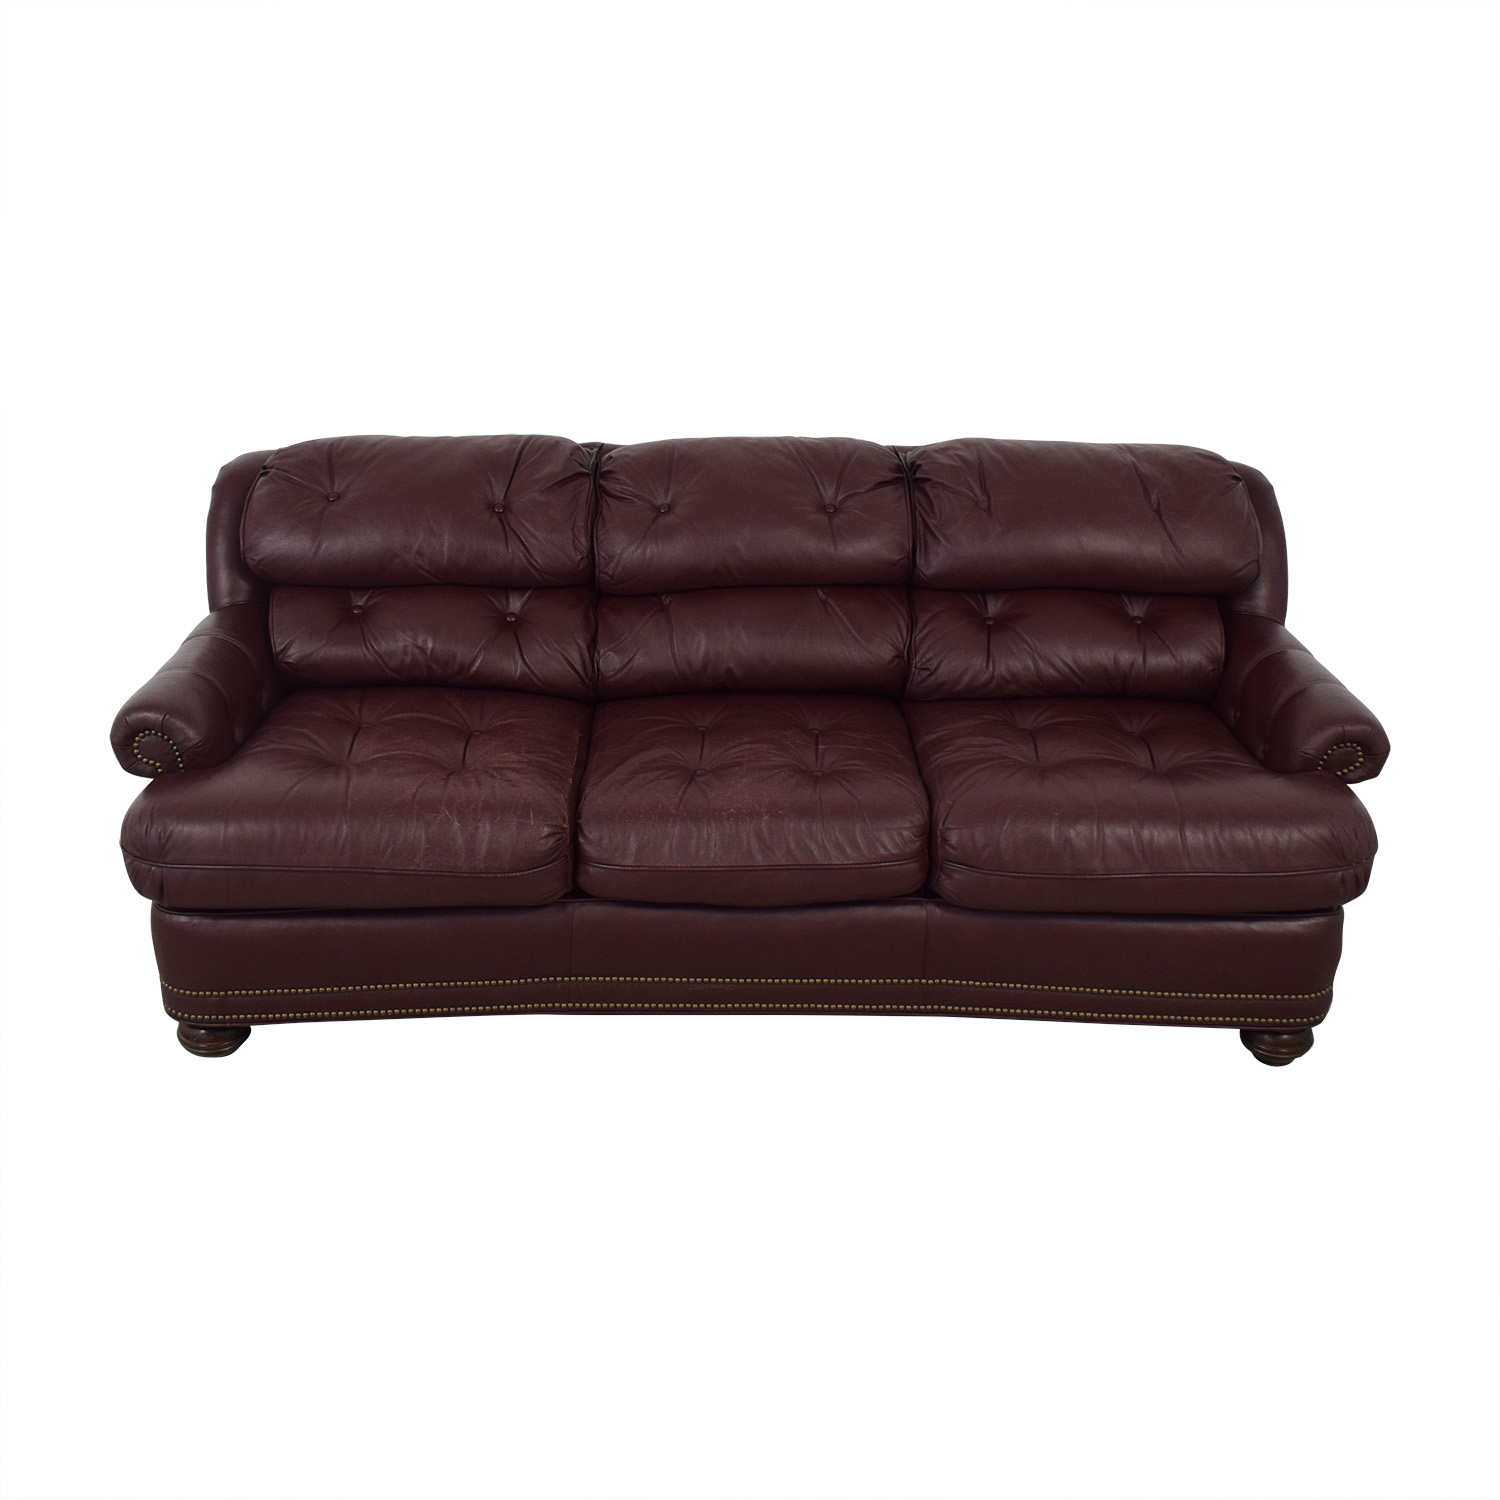 buy Distinctions Furniture Red Nailhead Distinctions Furniture